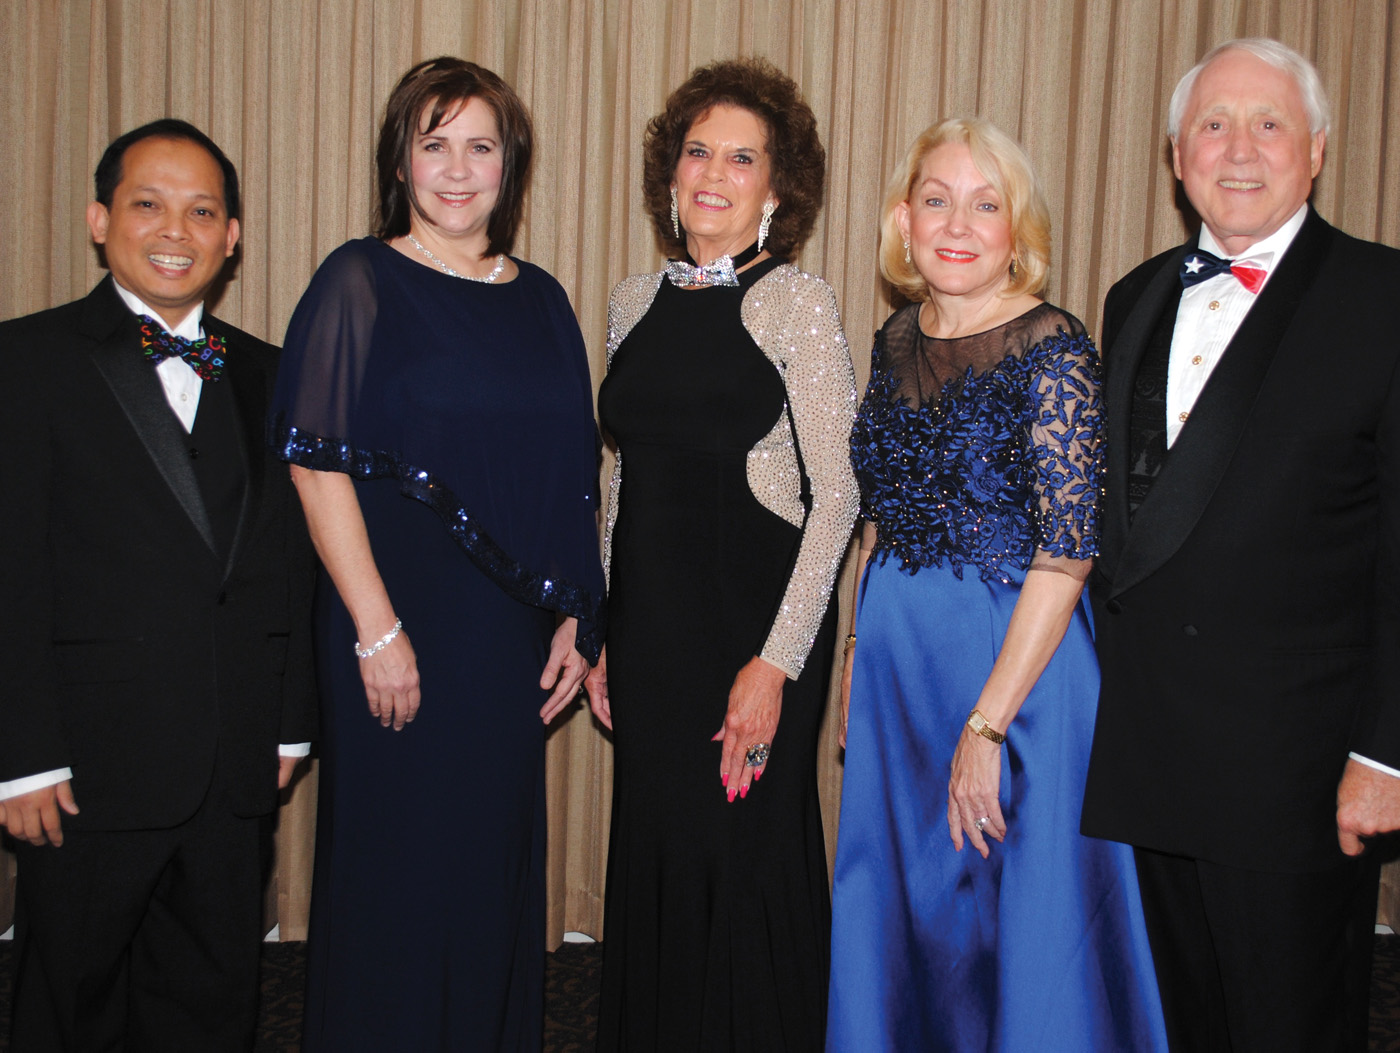 Superstar Award winners for 2015 line up for a picture at the reception in their honor prior to the CCEF Gala at South Shore Harbour Resort. They are, from left, CCISD Teachers of the Year Anthony Tran and Tonia Doerre Toque, Emmeline Dodd, Dr. Pat Wilson and Capt. Wendell Wilson.